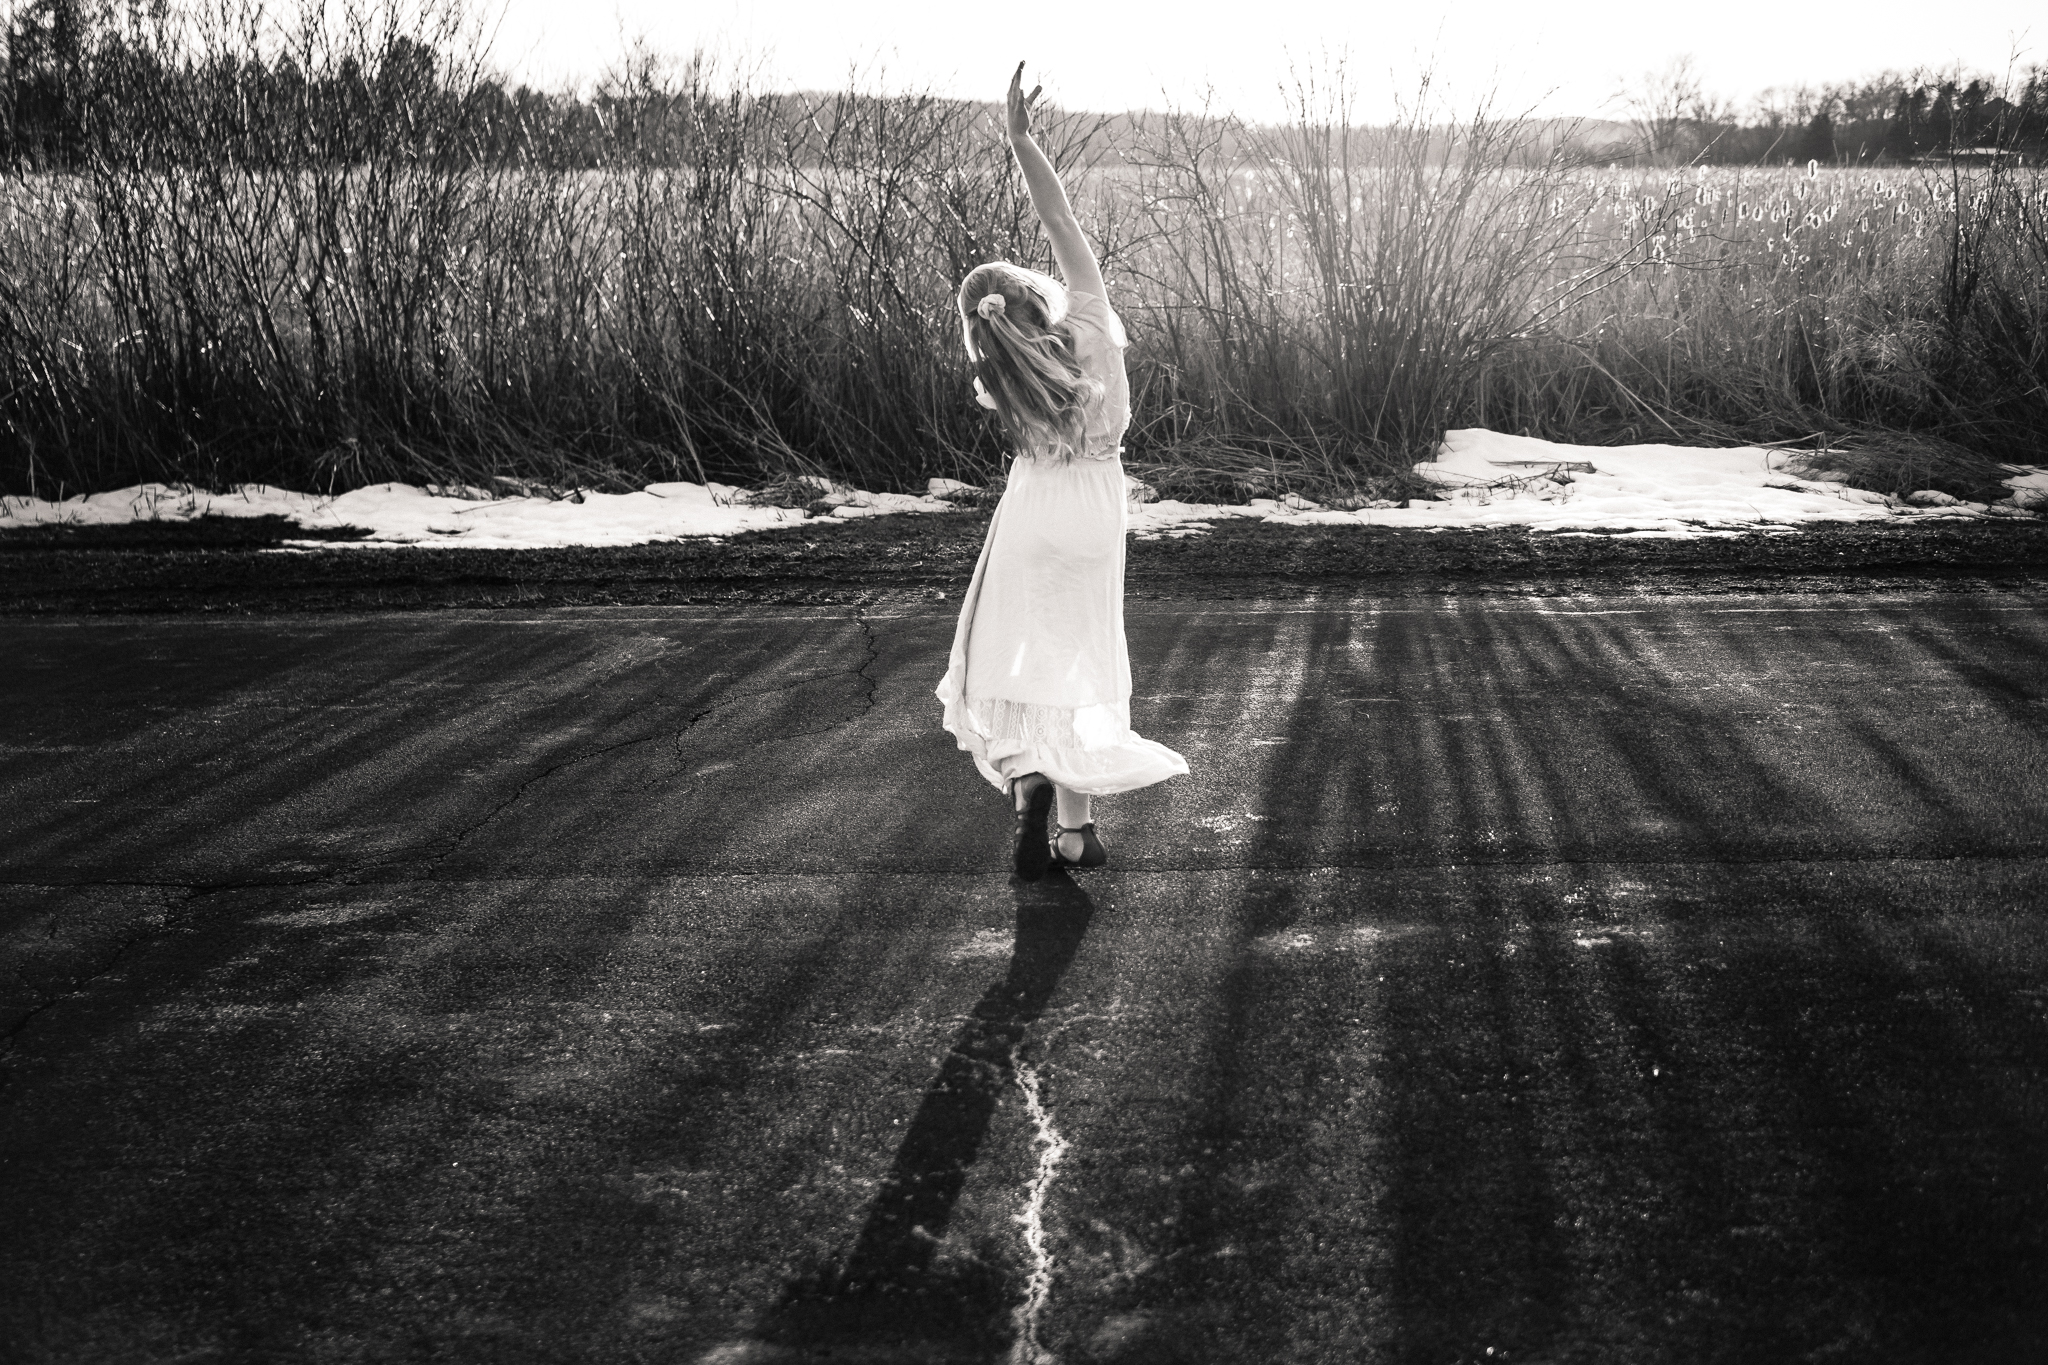 ballerina dancing in a rural field - AMG Photography